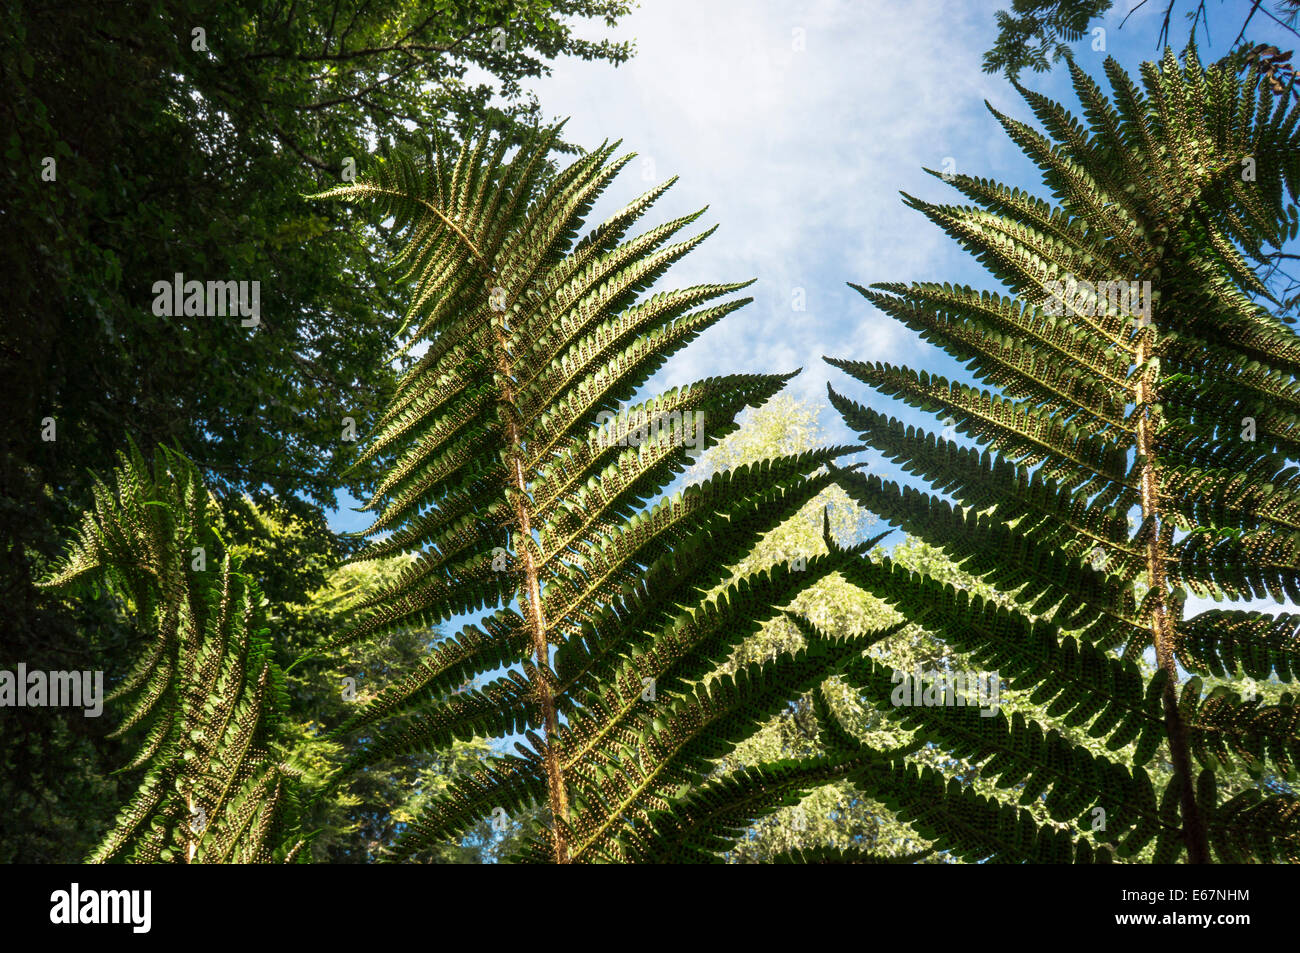 Scaly Fern ( Dryopteris affinis) Stock Photo